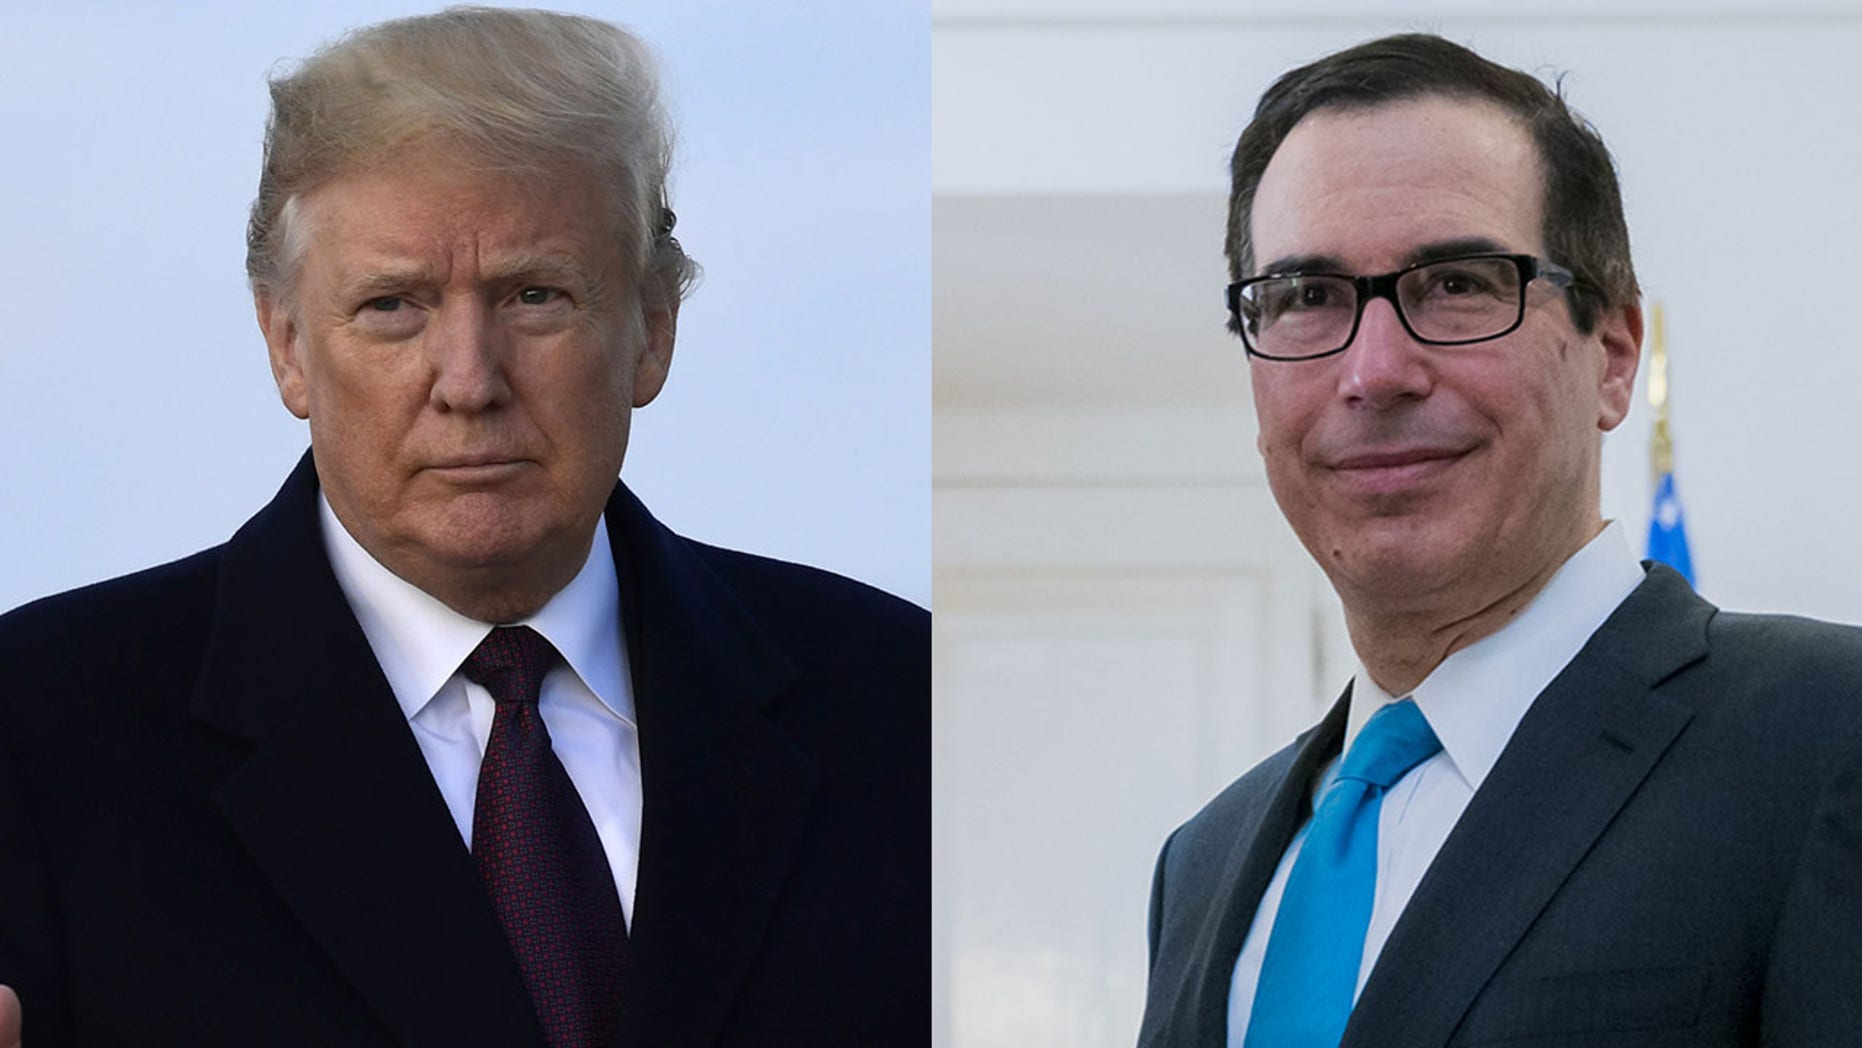 """President Trump on Friday dismissed rumors that he's unhappy with the performance of Treasury Secretary Steven Mnuchin, labeling a report about the alleged unease """"fake news."""""""